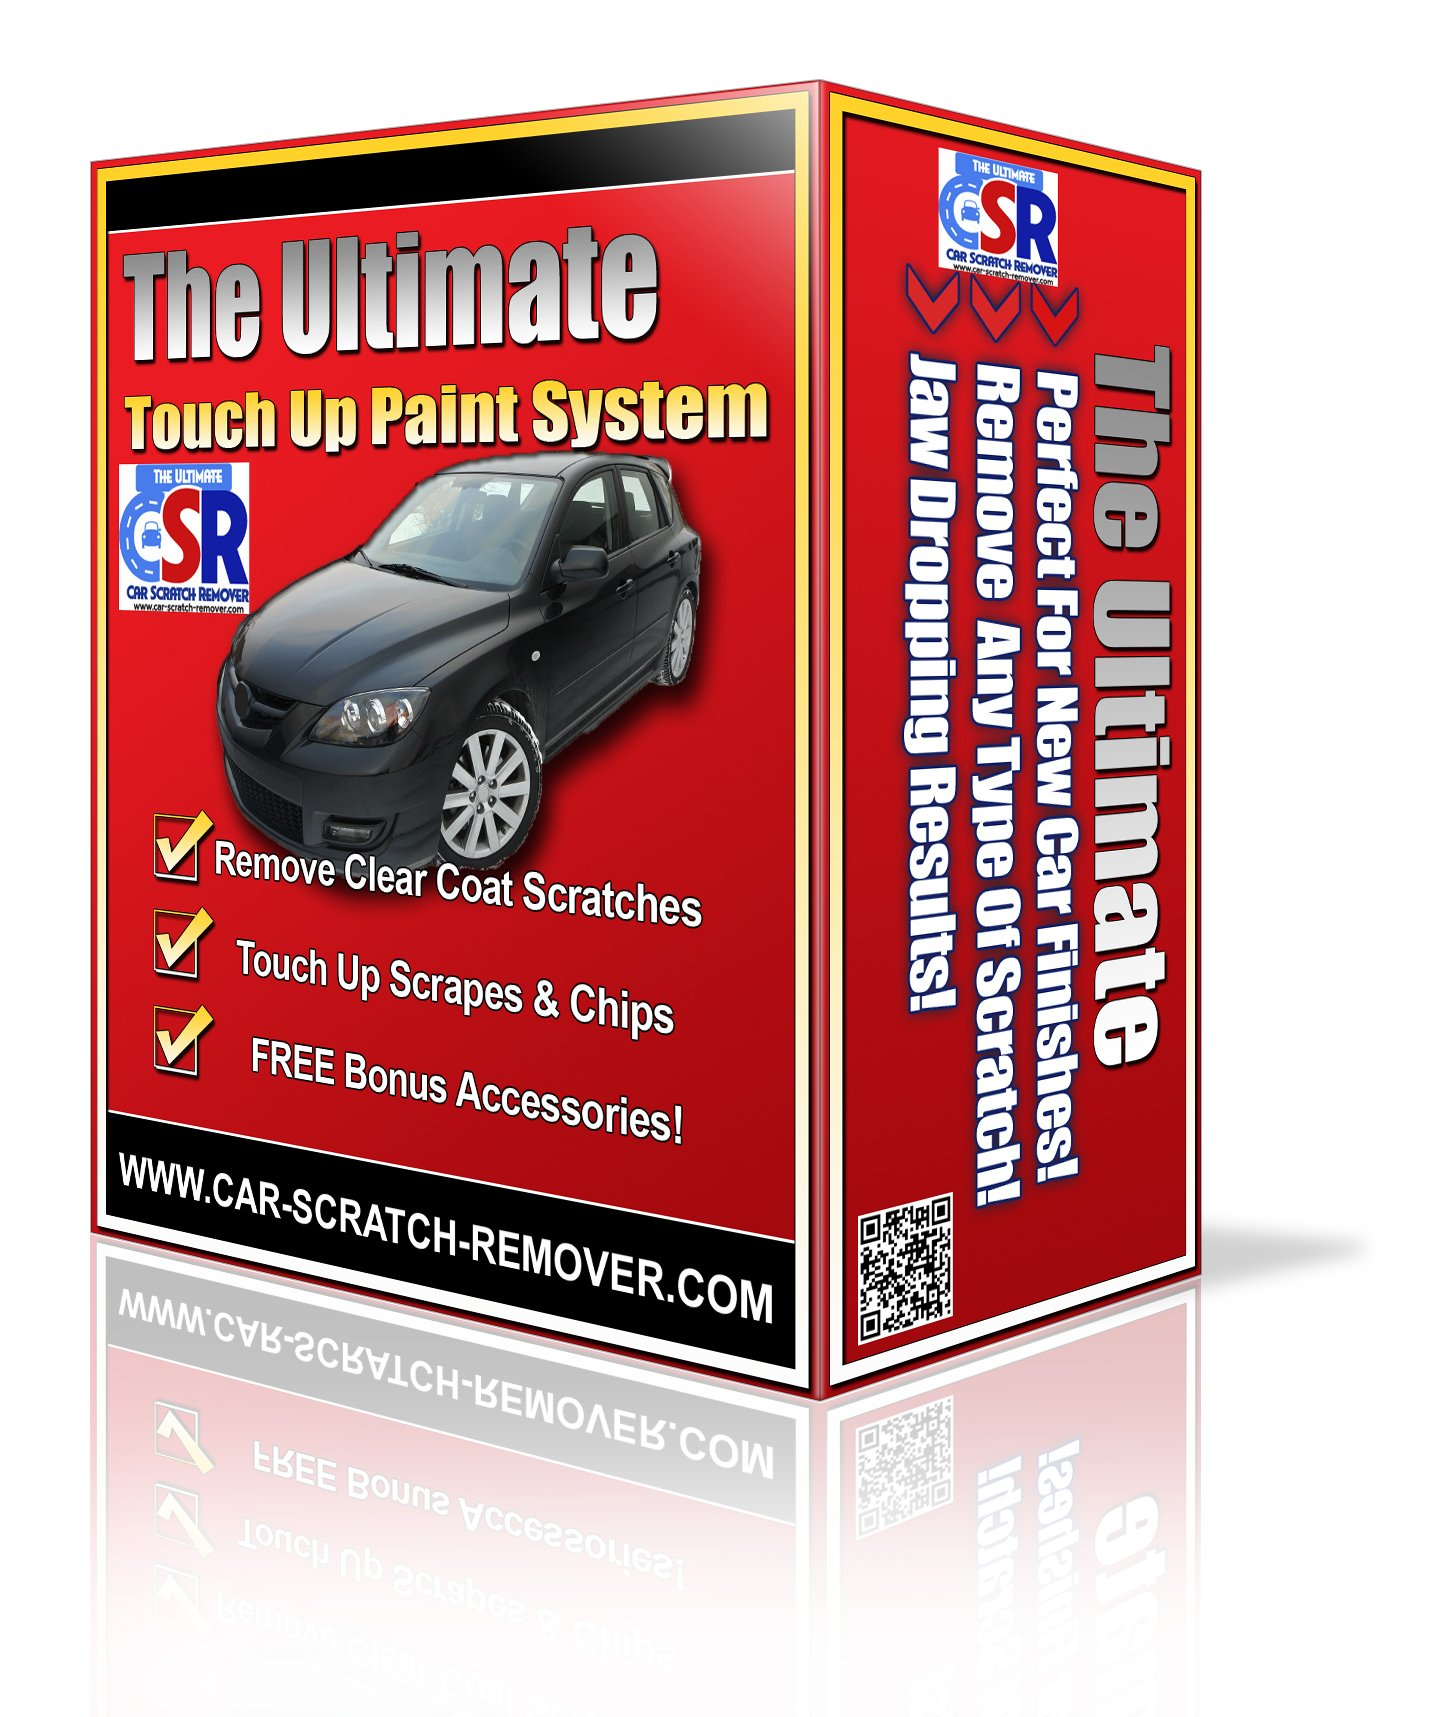 The Ultimate Car Scratch Remover plus Touch Up Paint Kit